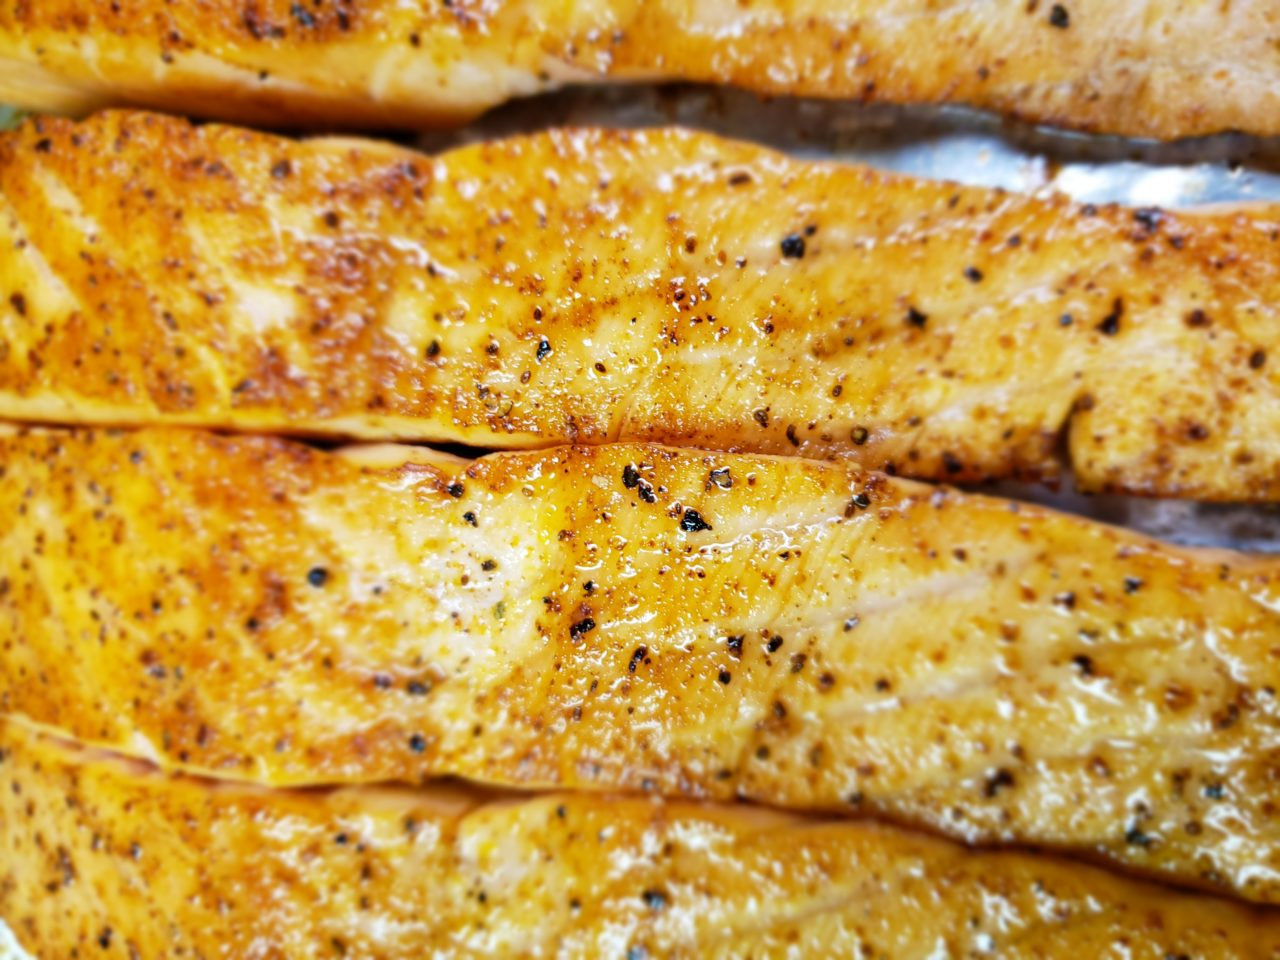 Salmon grilled to perfection